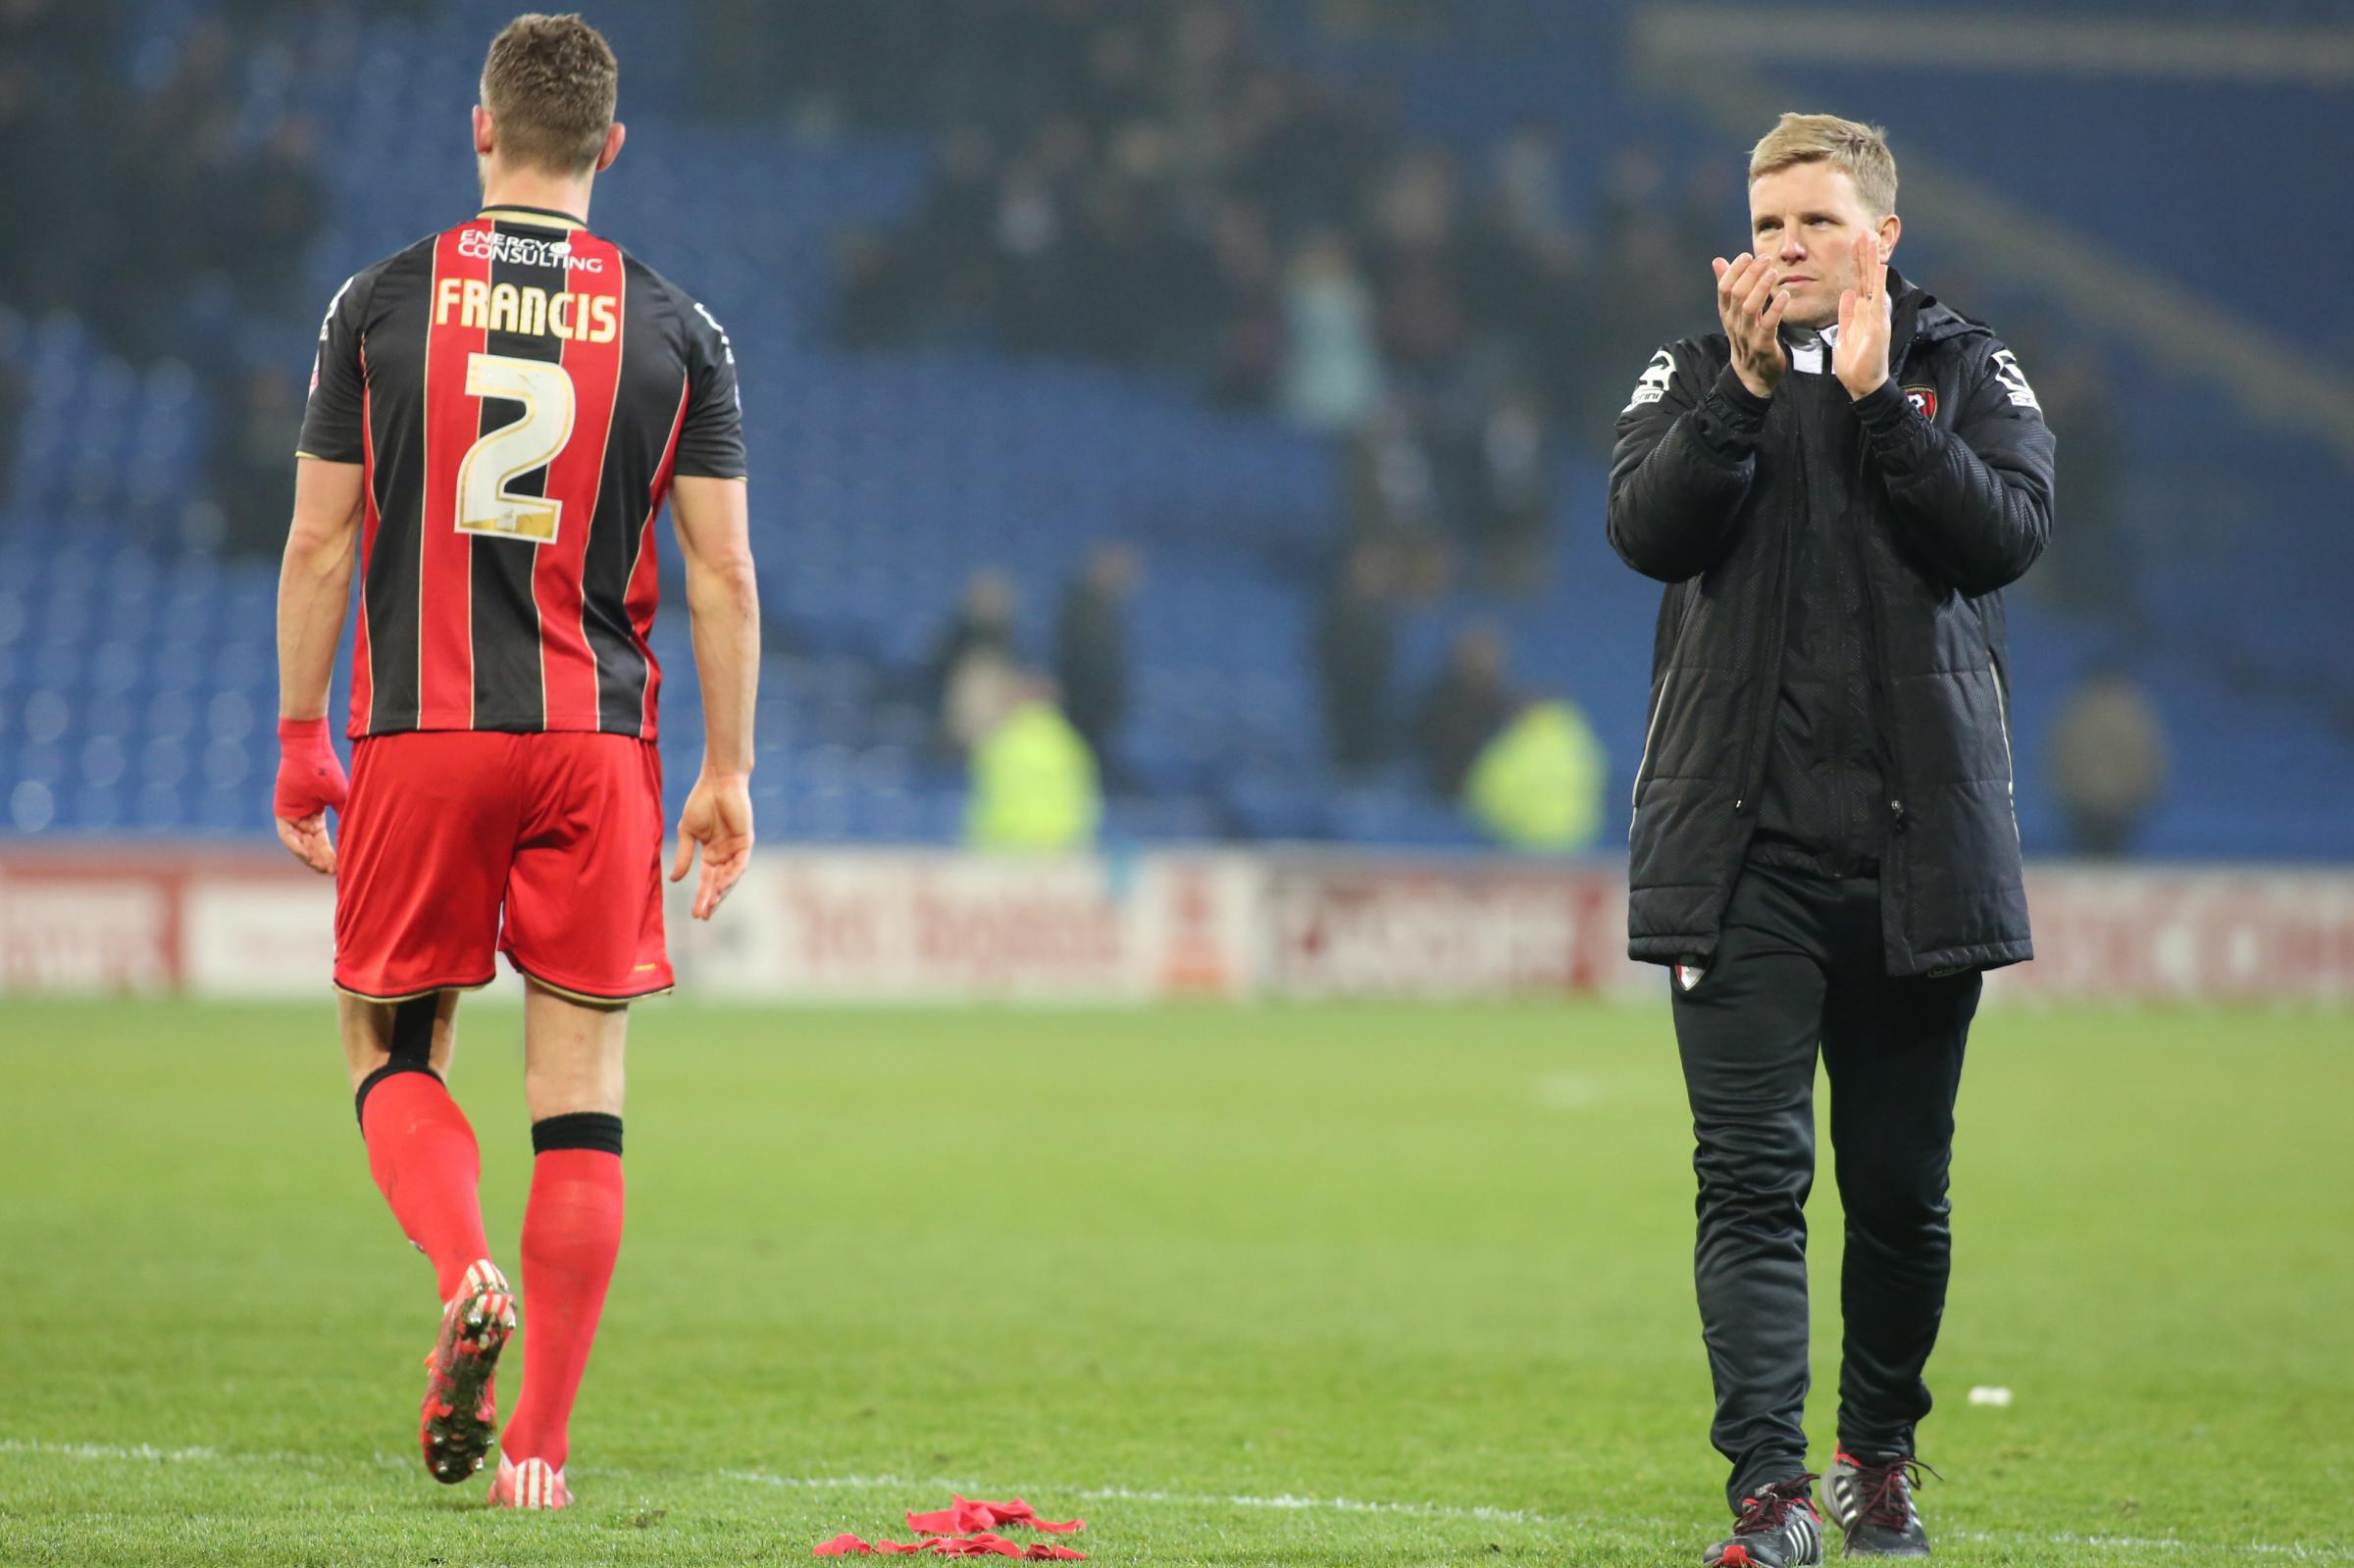 Eddie Howe says AFC Bournemouth captain Simon Francis' mentality will help him to make a full recovery from his knee injury